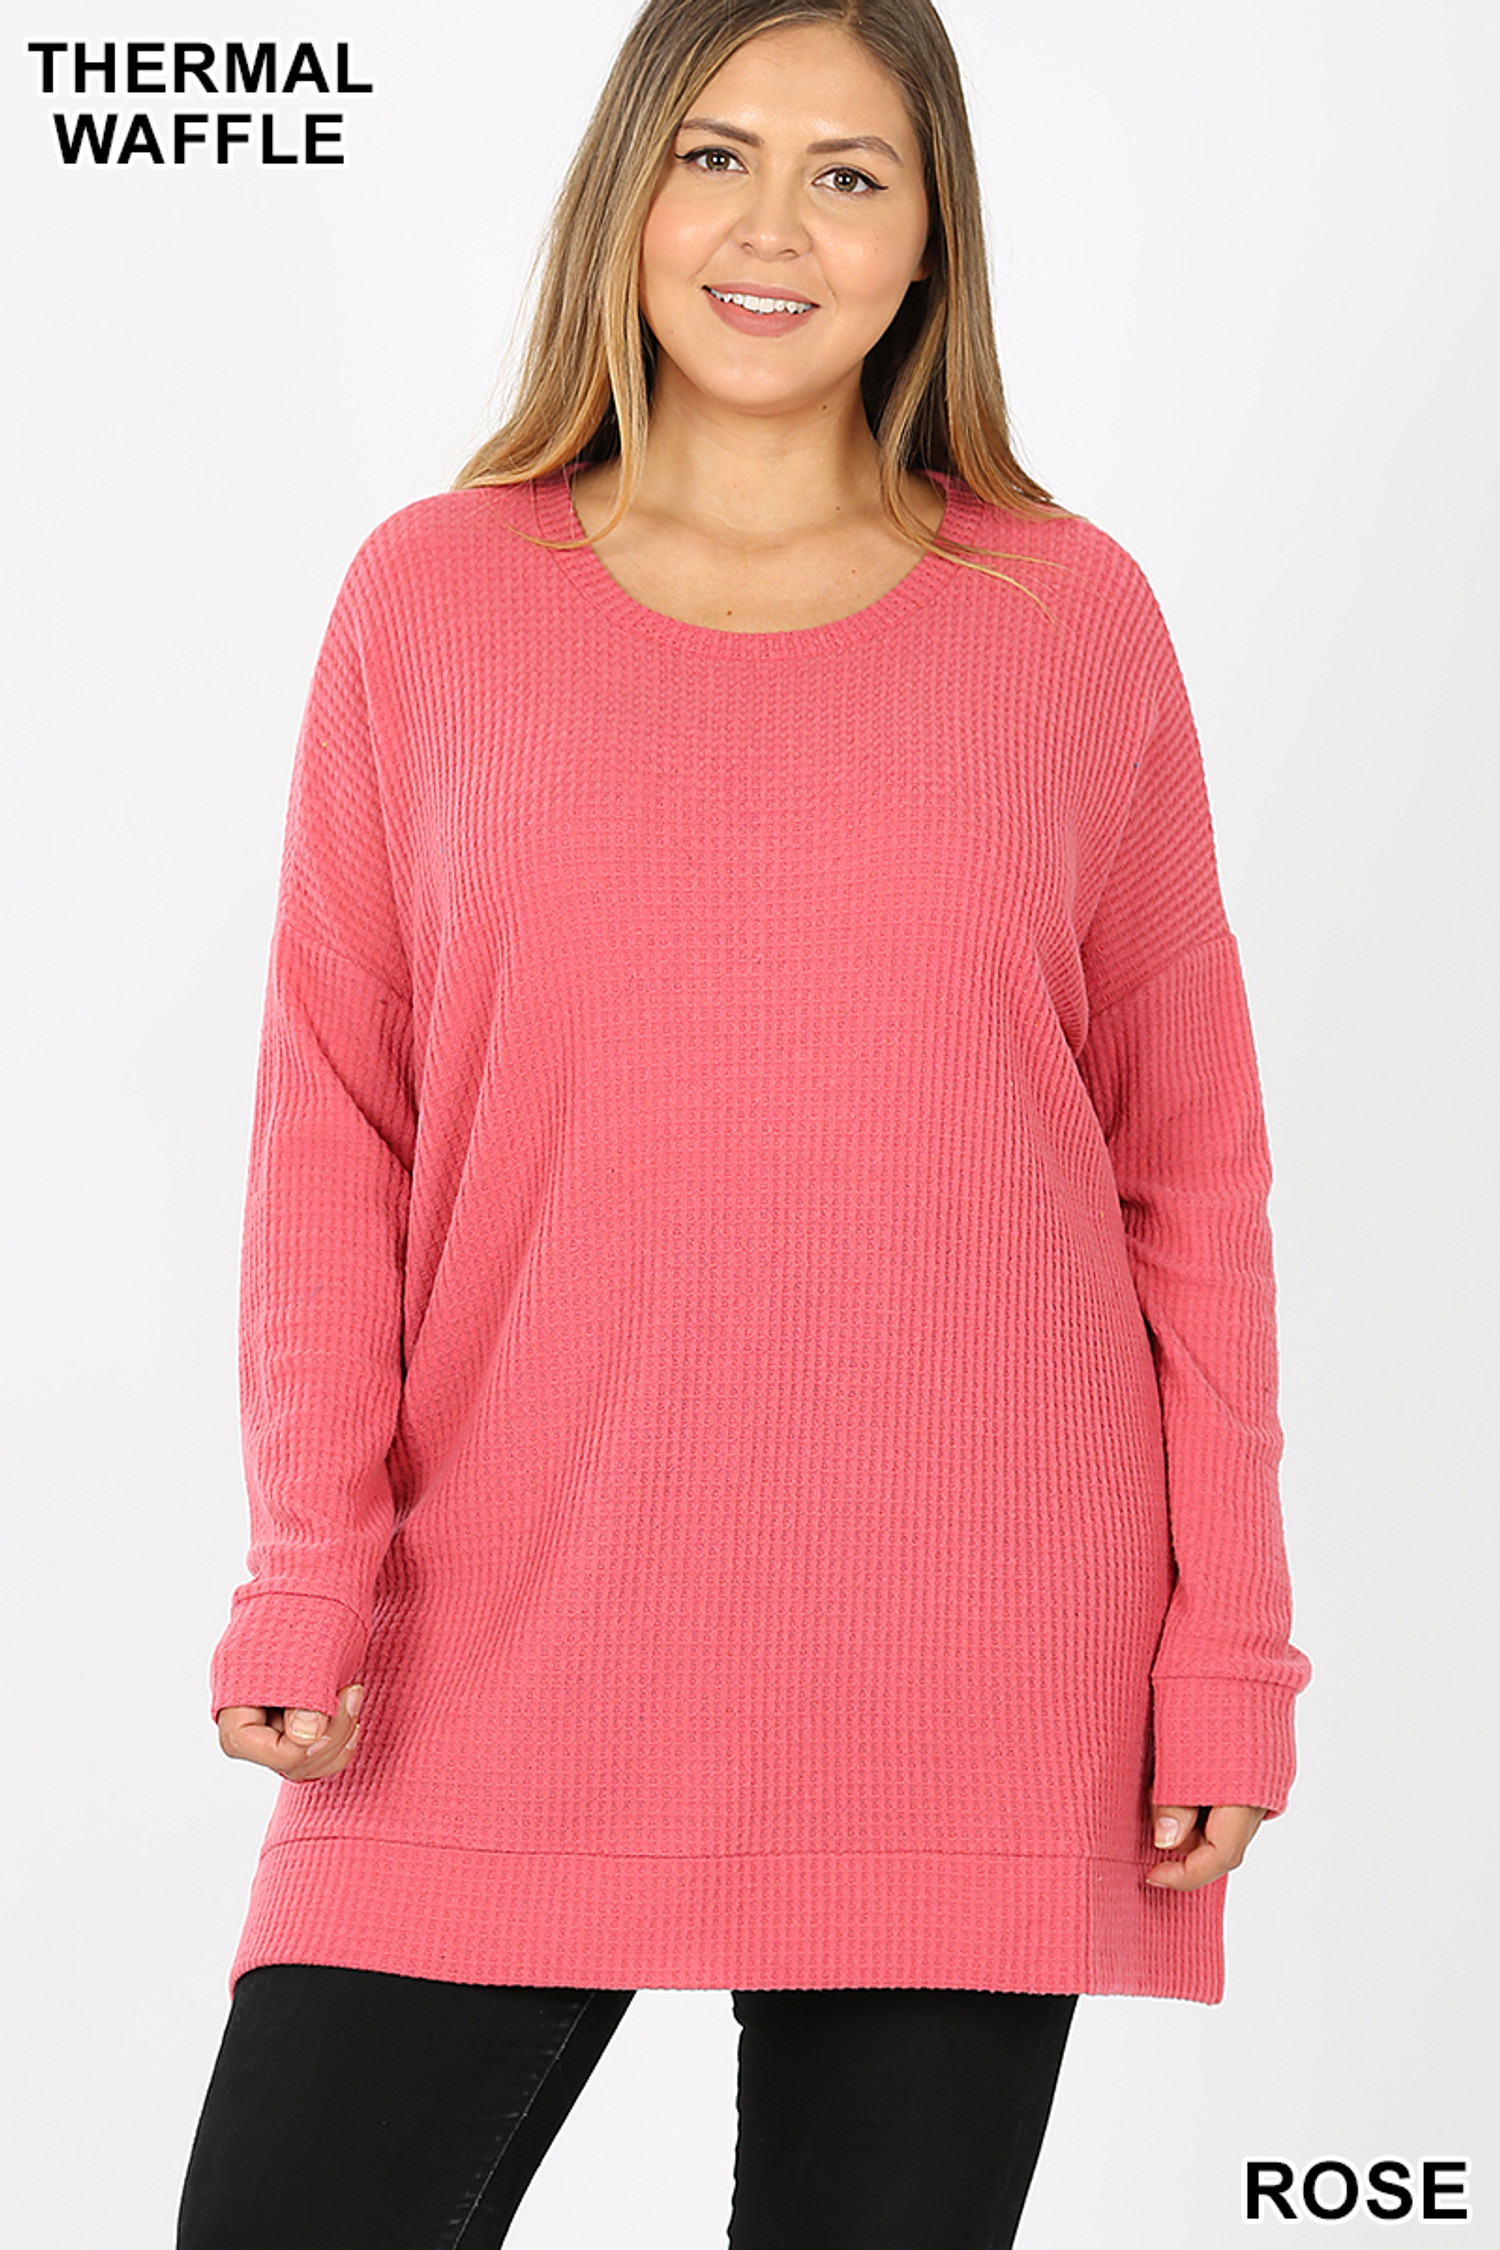 Front image of Rose Brushed Thermal Waffle Knit Round Neck Plus Size Sweater